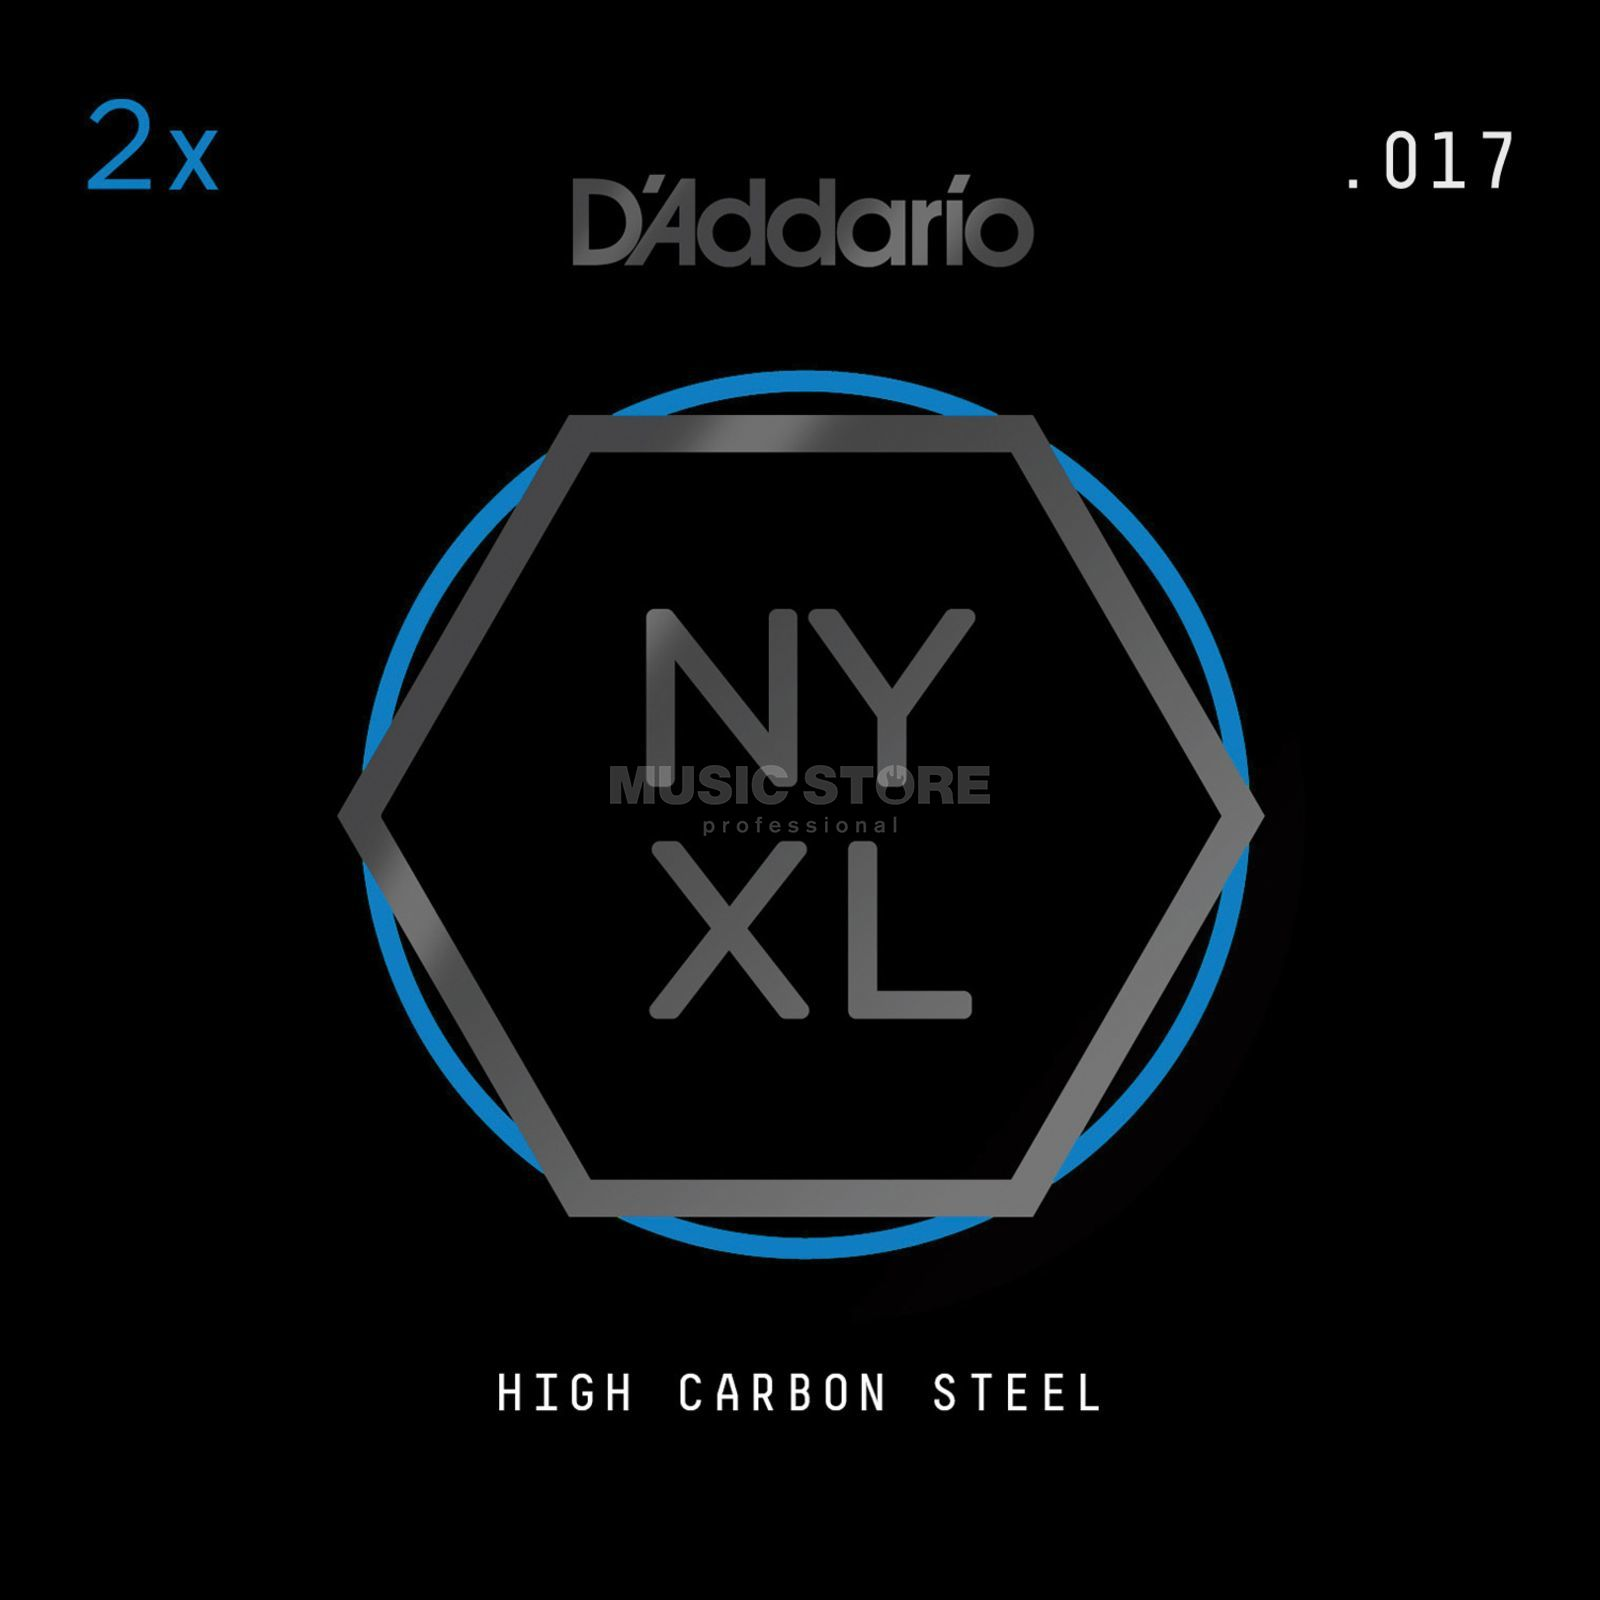 D'Addario NYPL017 Plain Single String 2-Pack - High Carbon Steel Zdjęcie produktu